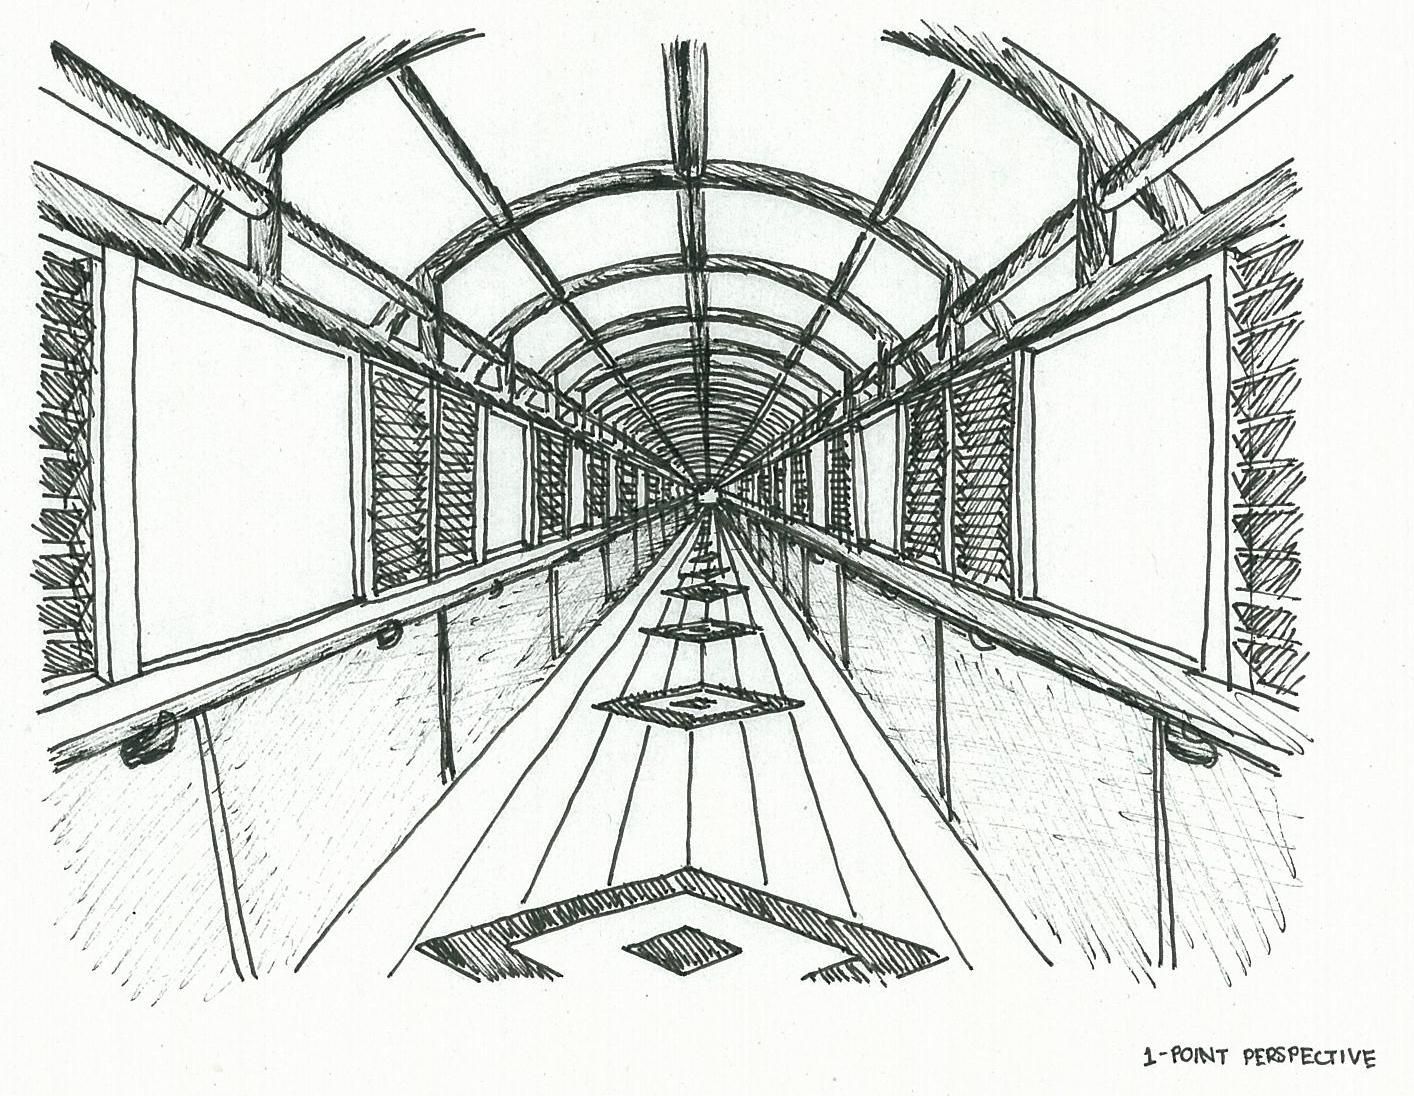 One Dimension Perspective Drawings